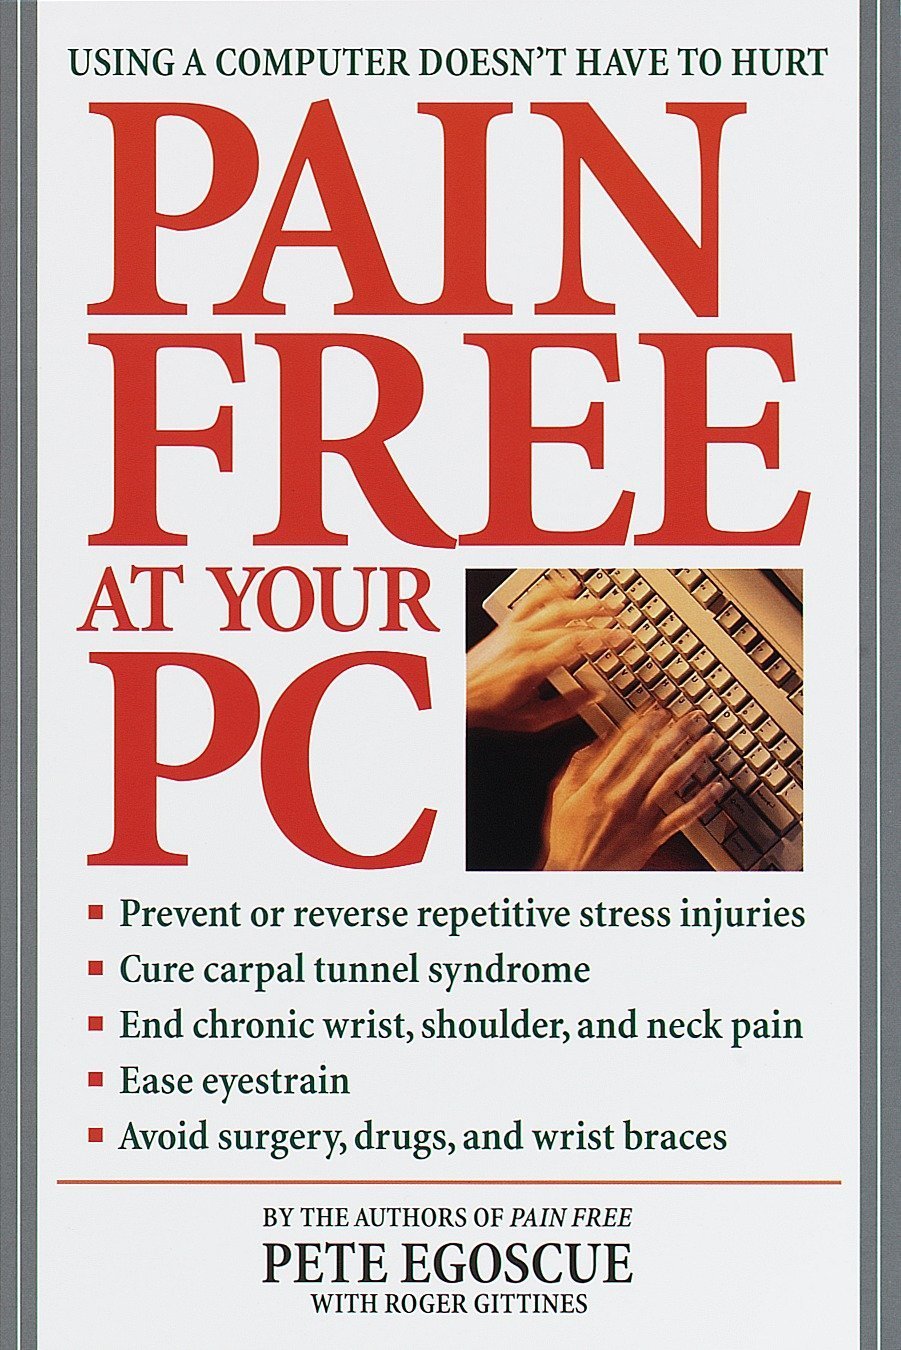 Pain Free at Your PC: Using a Computer Doesn't Have to Hurt pdf